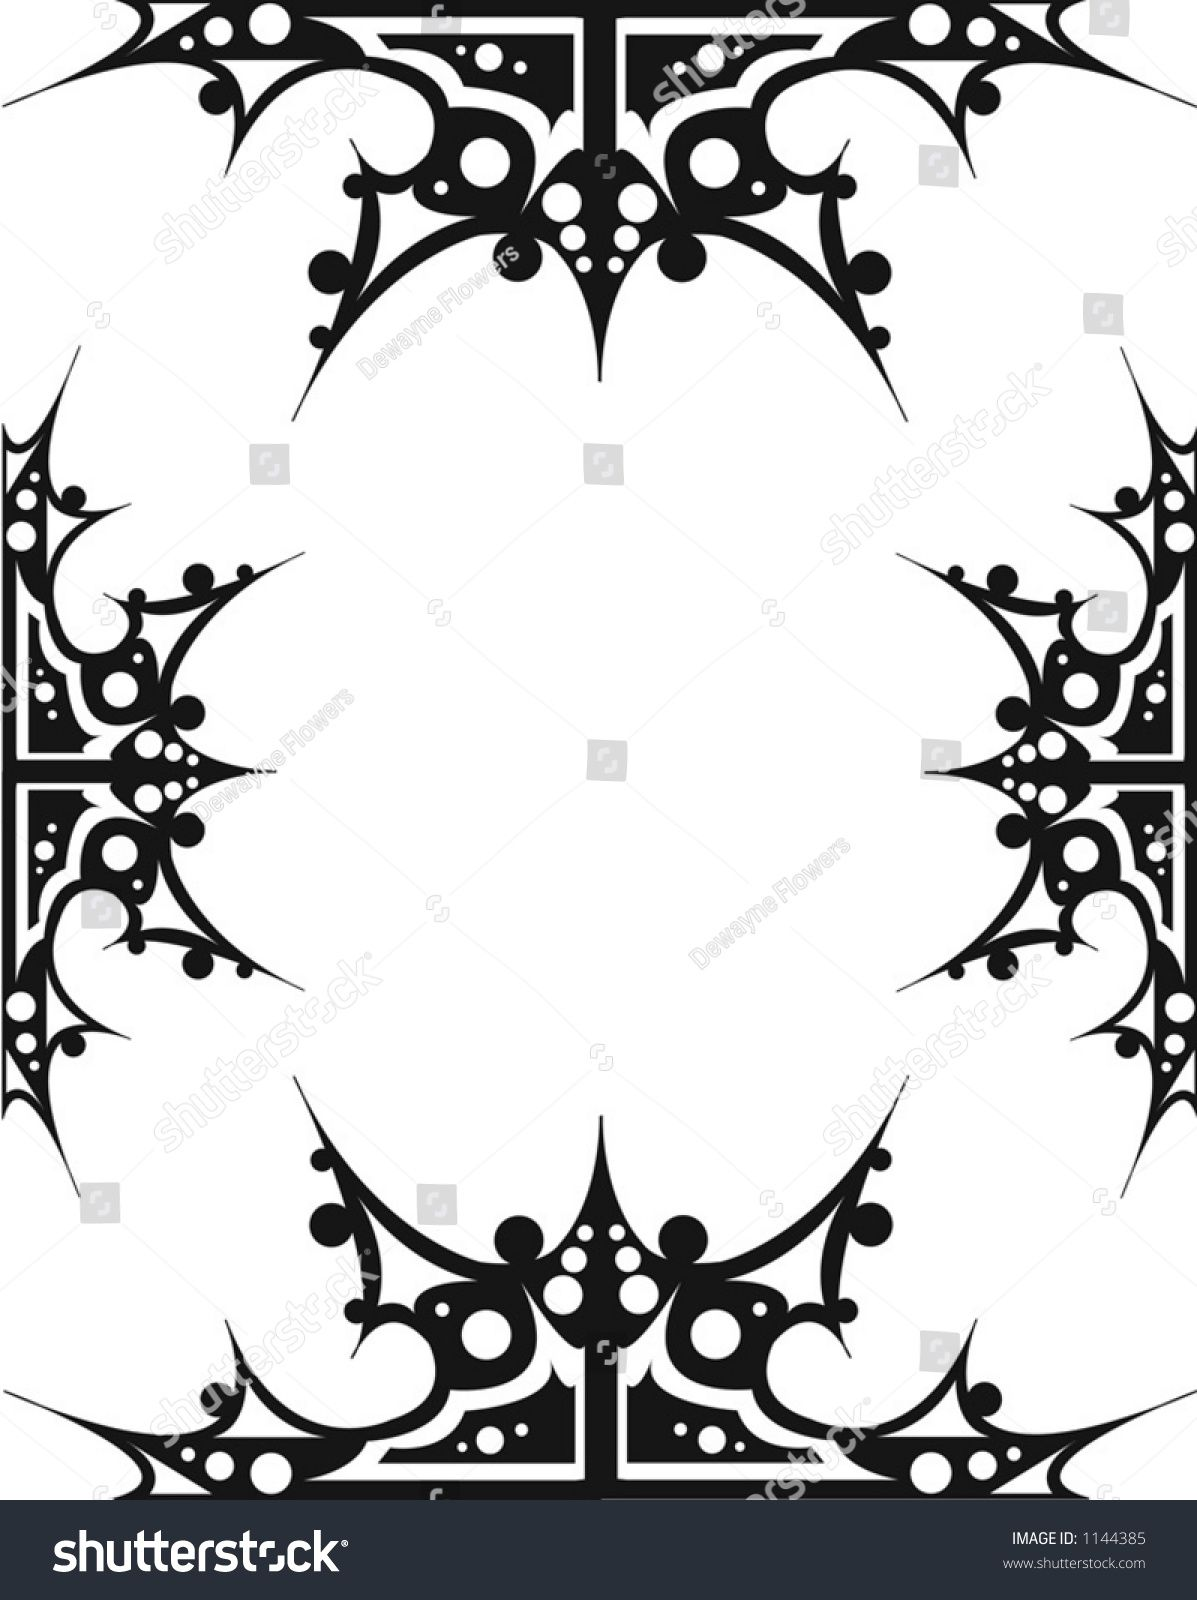 Image Result For Gothic Border Design